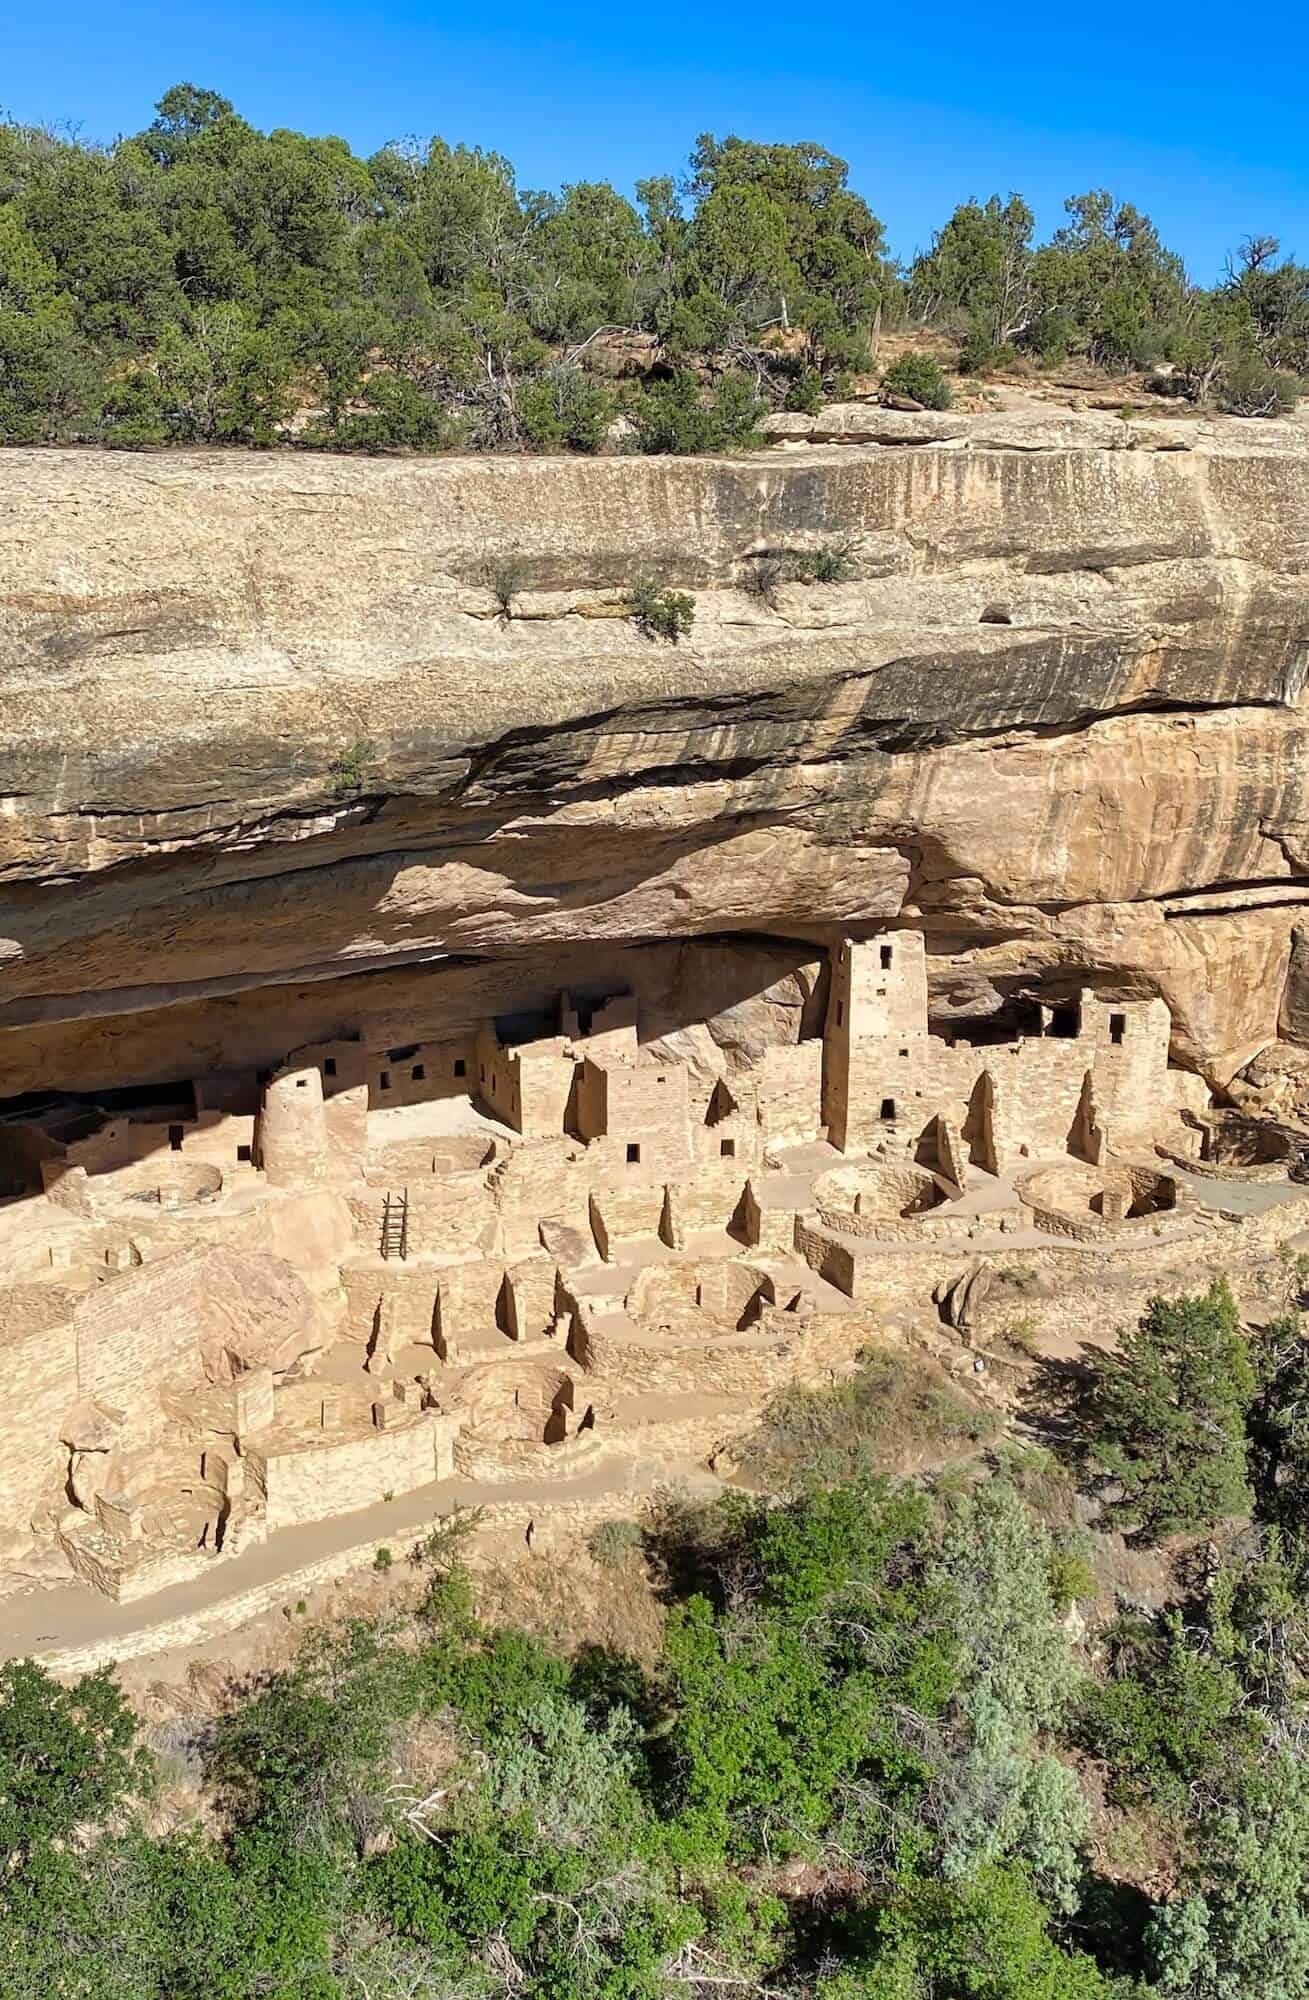 National Parks in the West - Mesa Verde